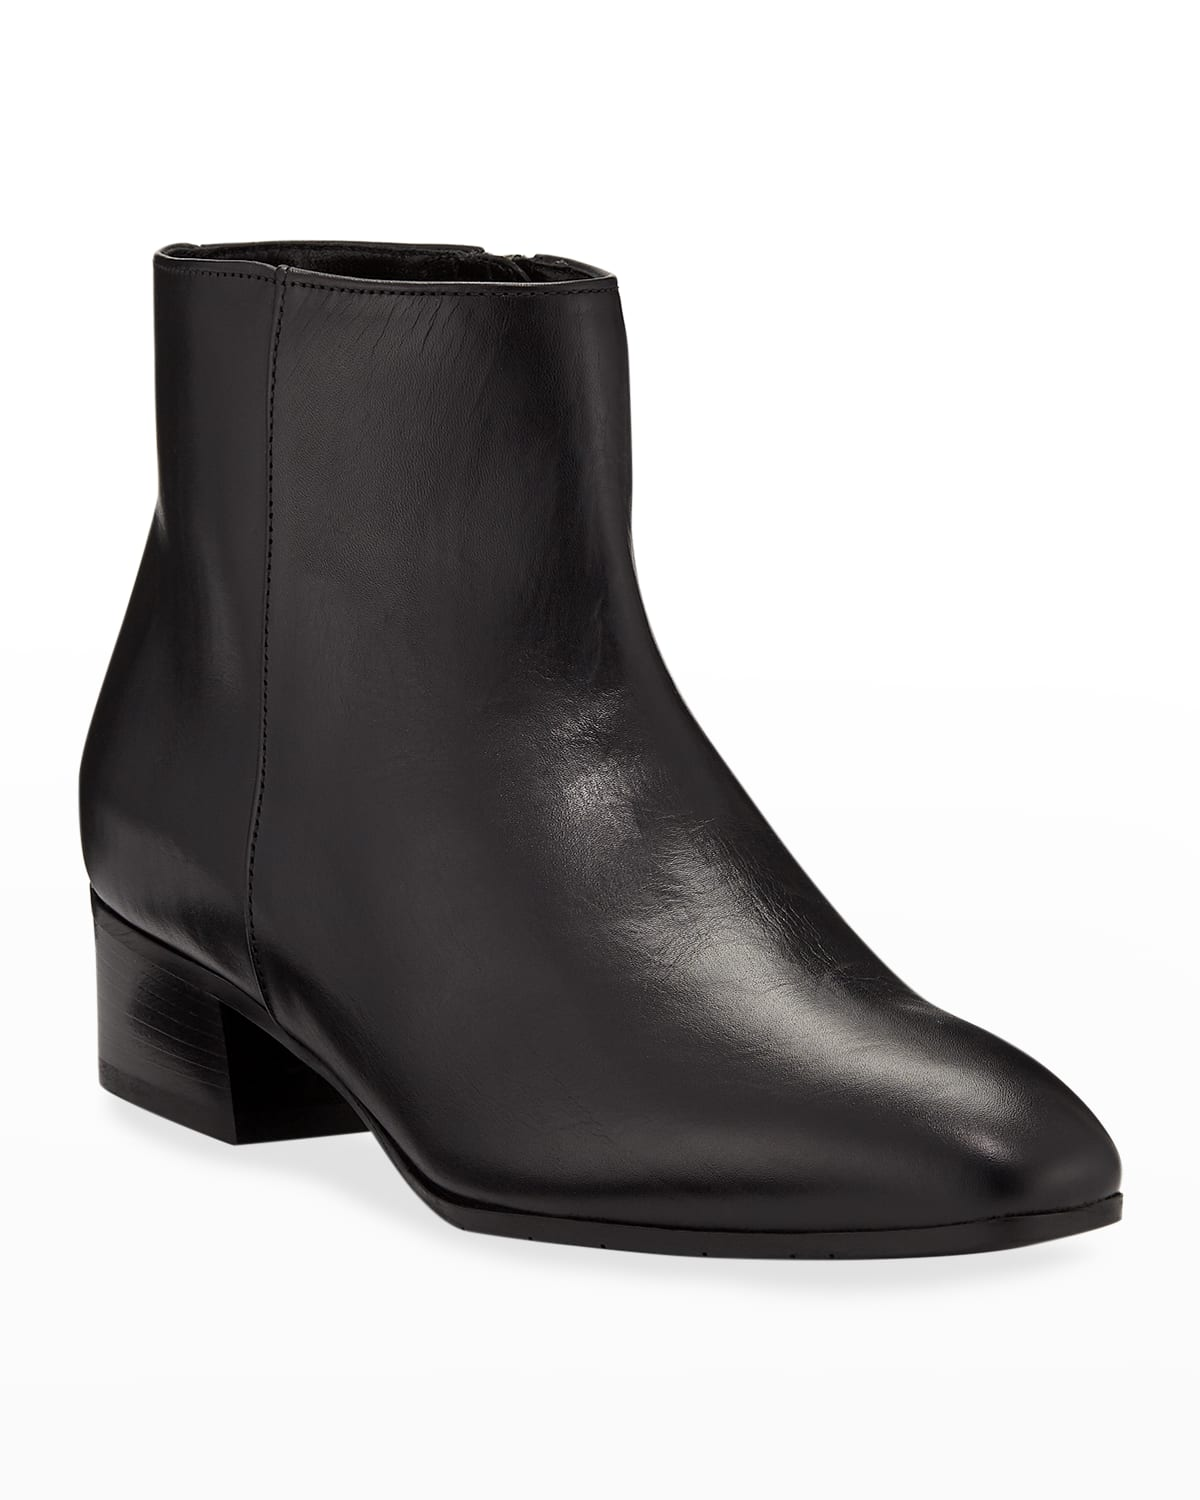 Fuoco Leather Ankle Boots